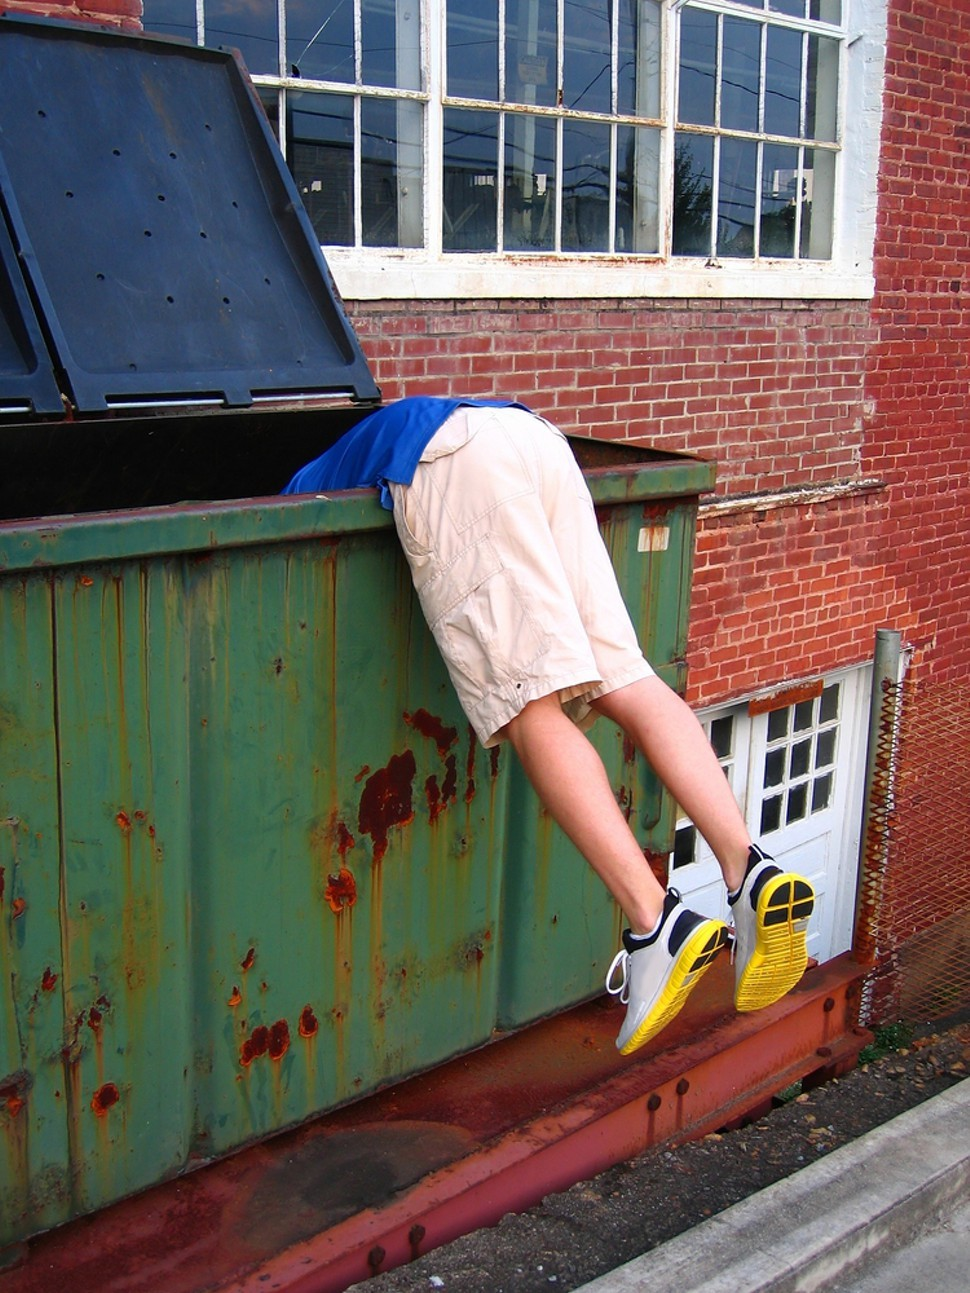 dumpster diving bleader image from shutterstock com